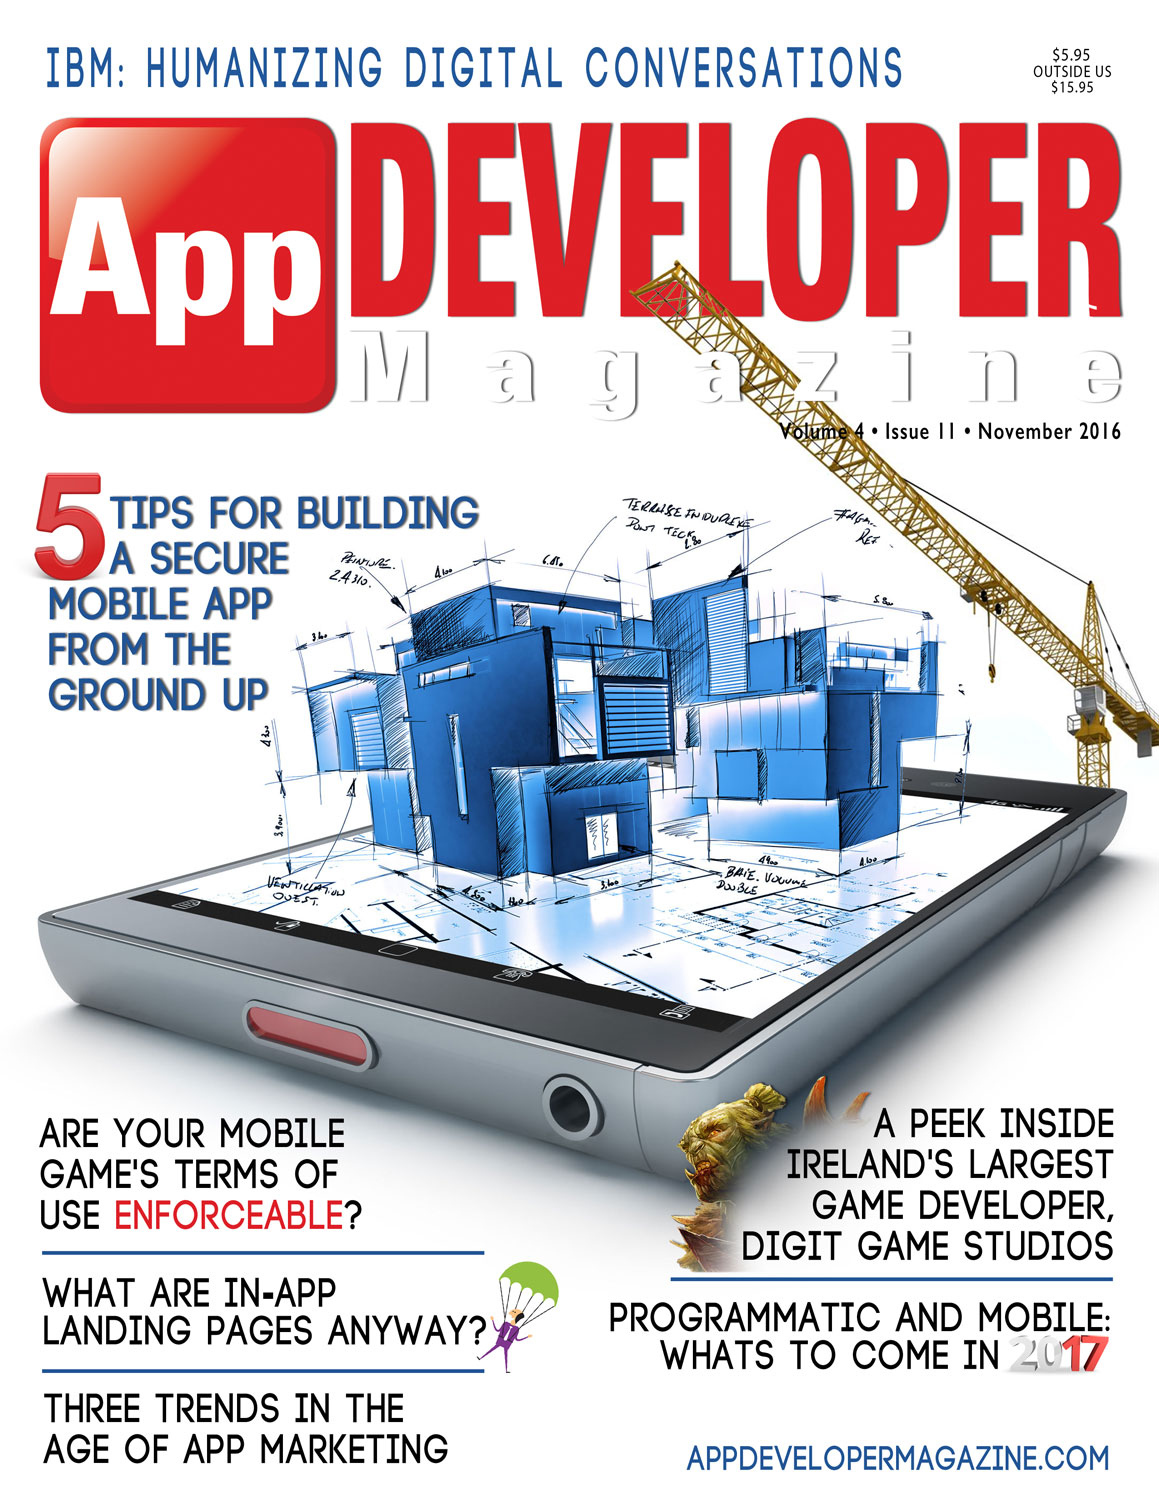 Read App Developer Magazine November 2016 issue